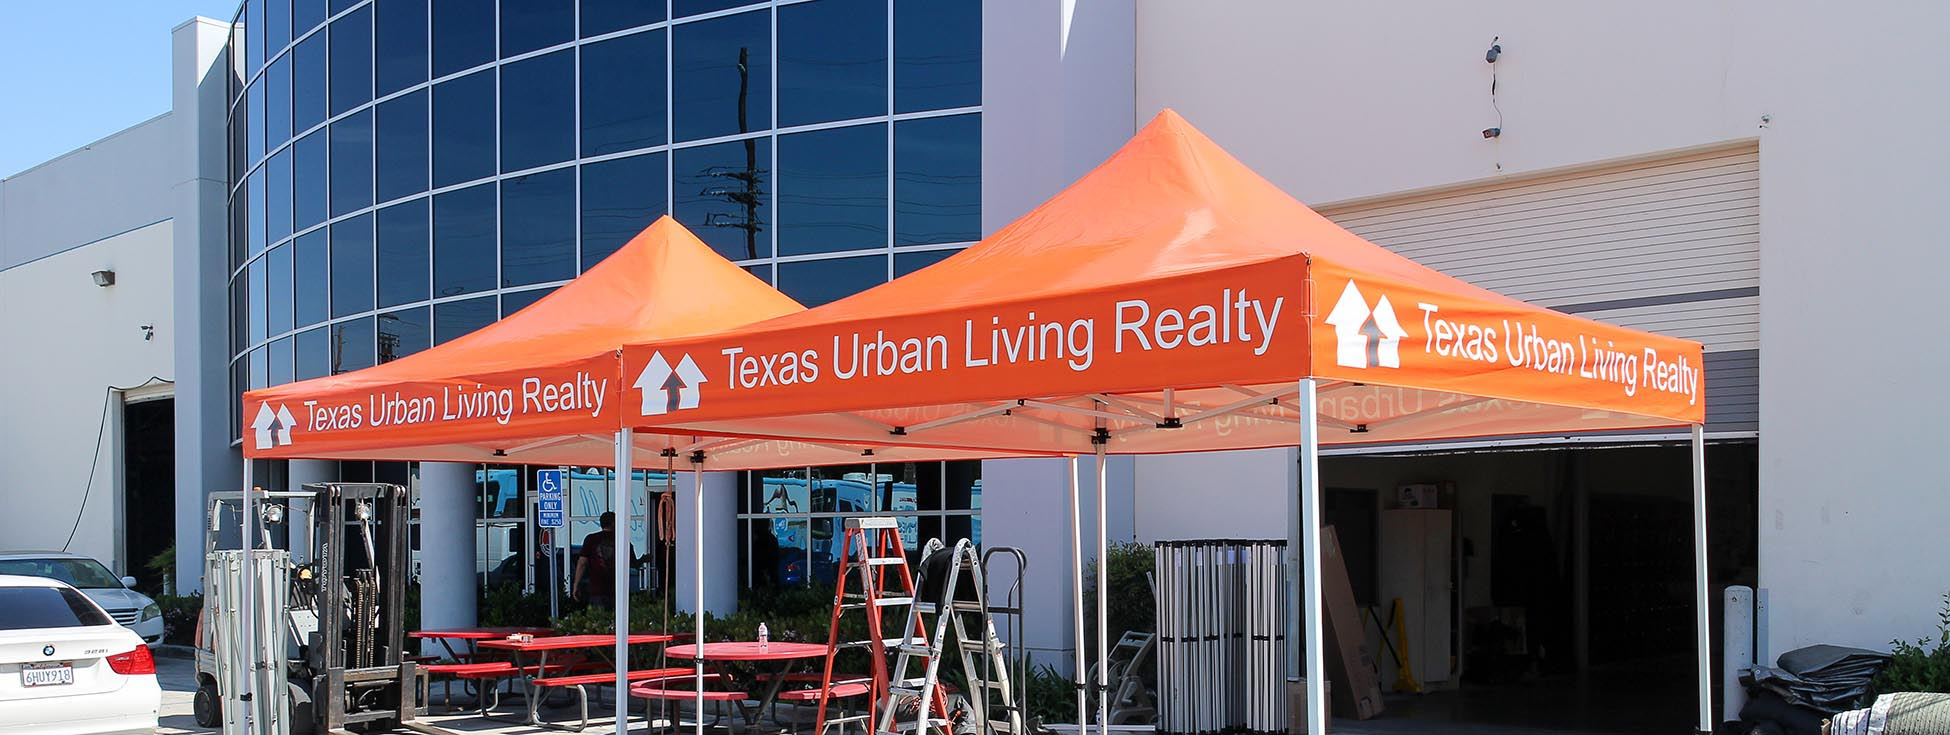 texas-urban-living-realty-header.jpg